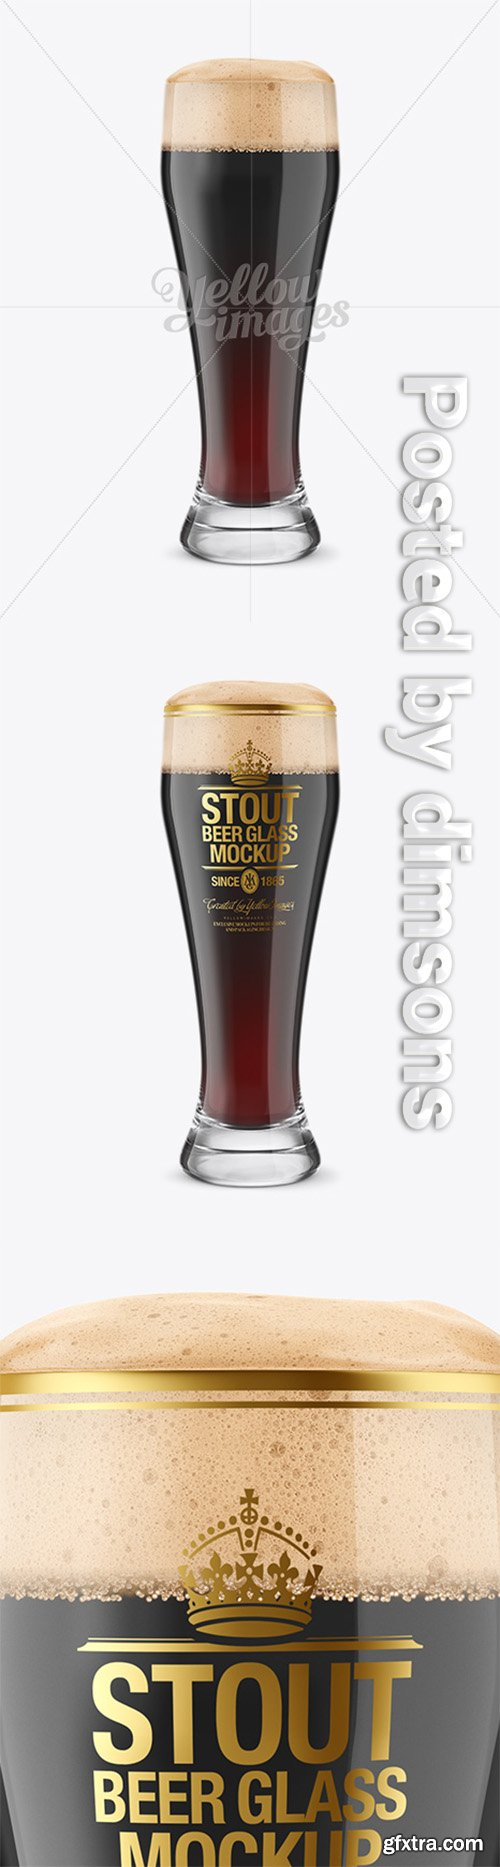 Weizen Glass with Stout Beer Mockup 14709